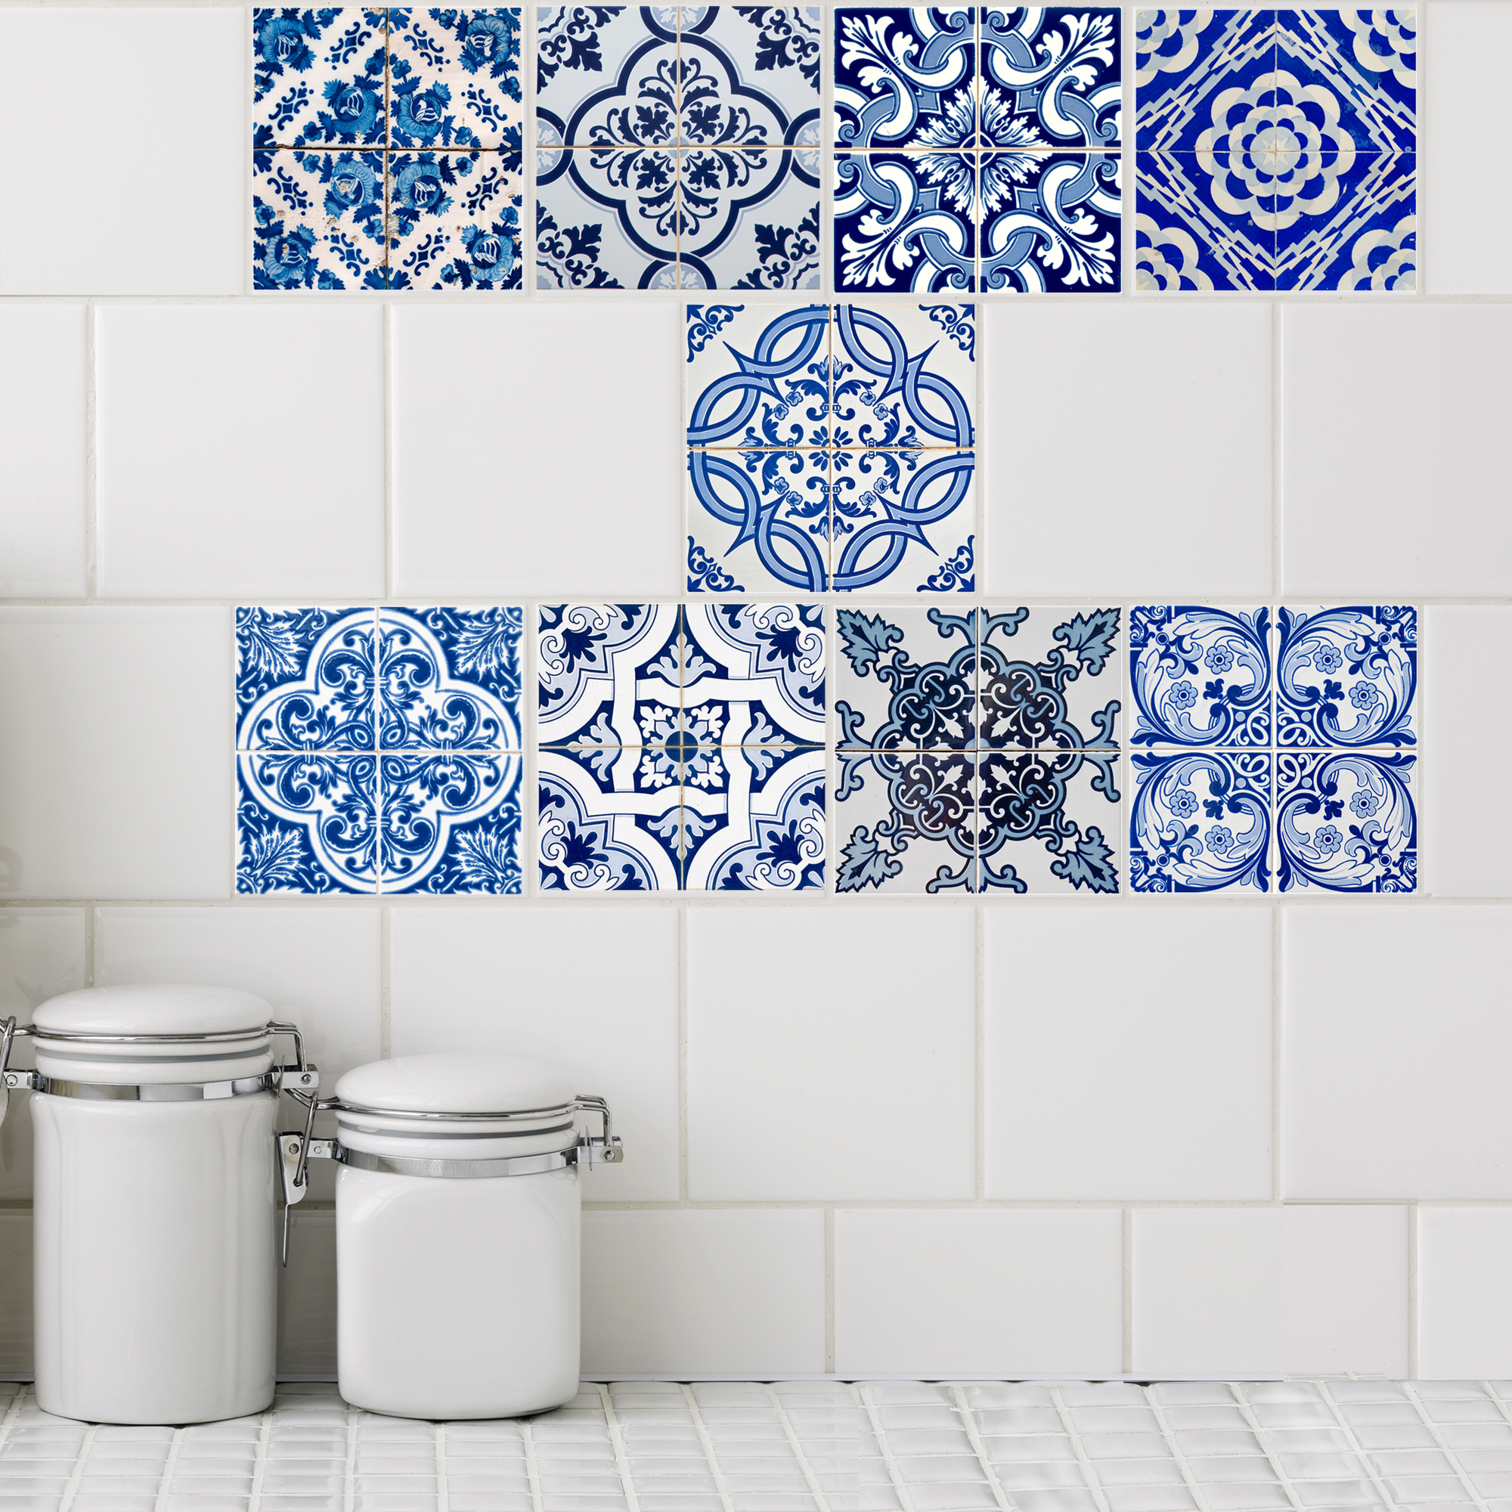 The ultimate decorating solution, StickPretty tile tattoos are ...